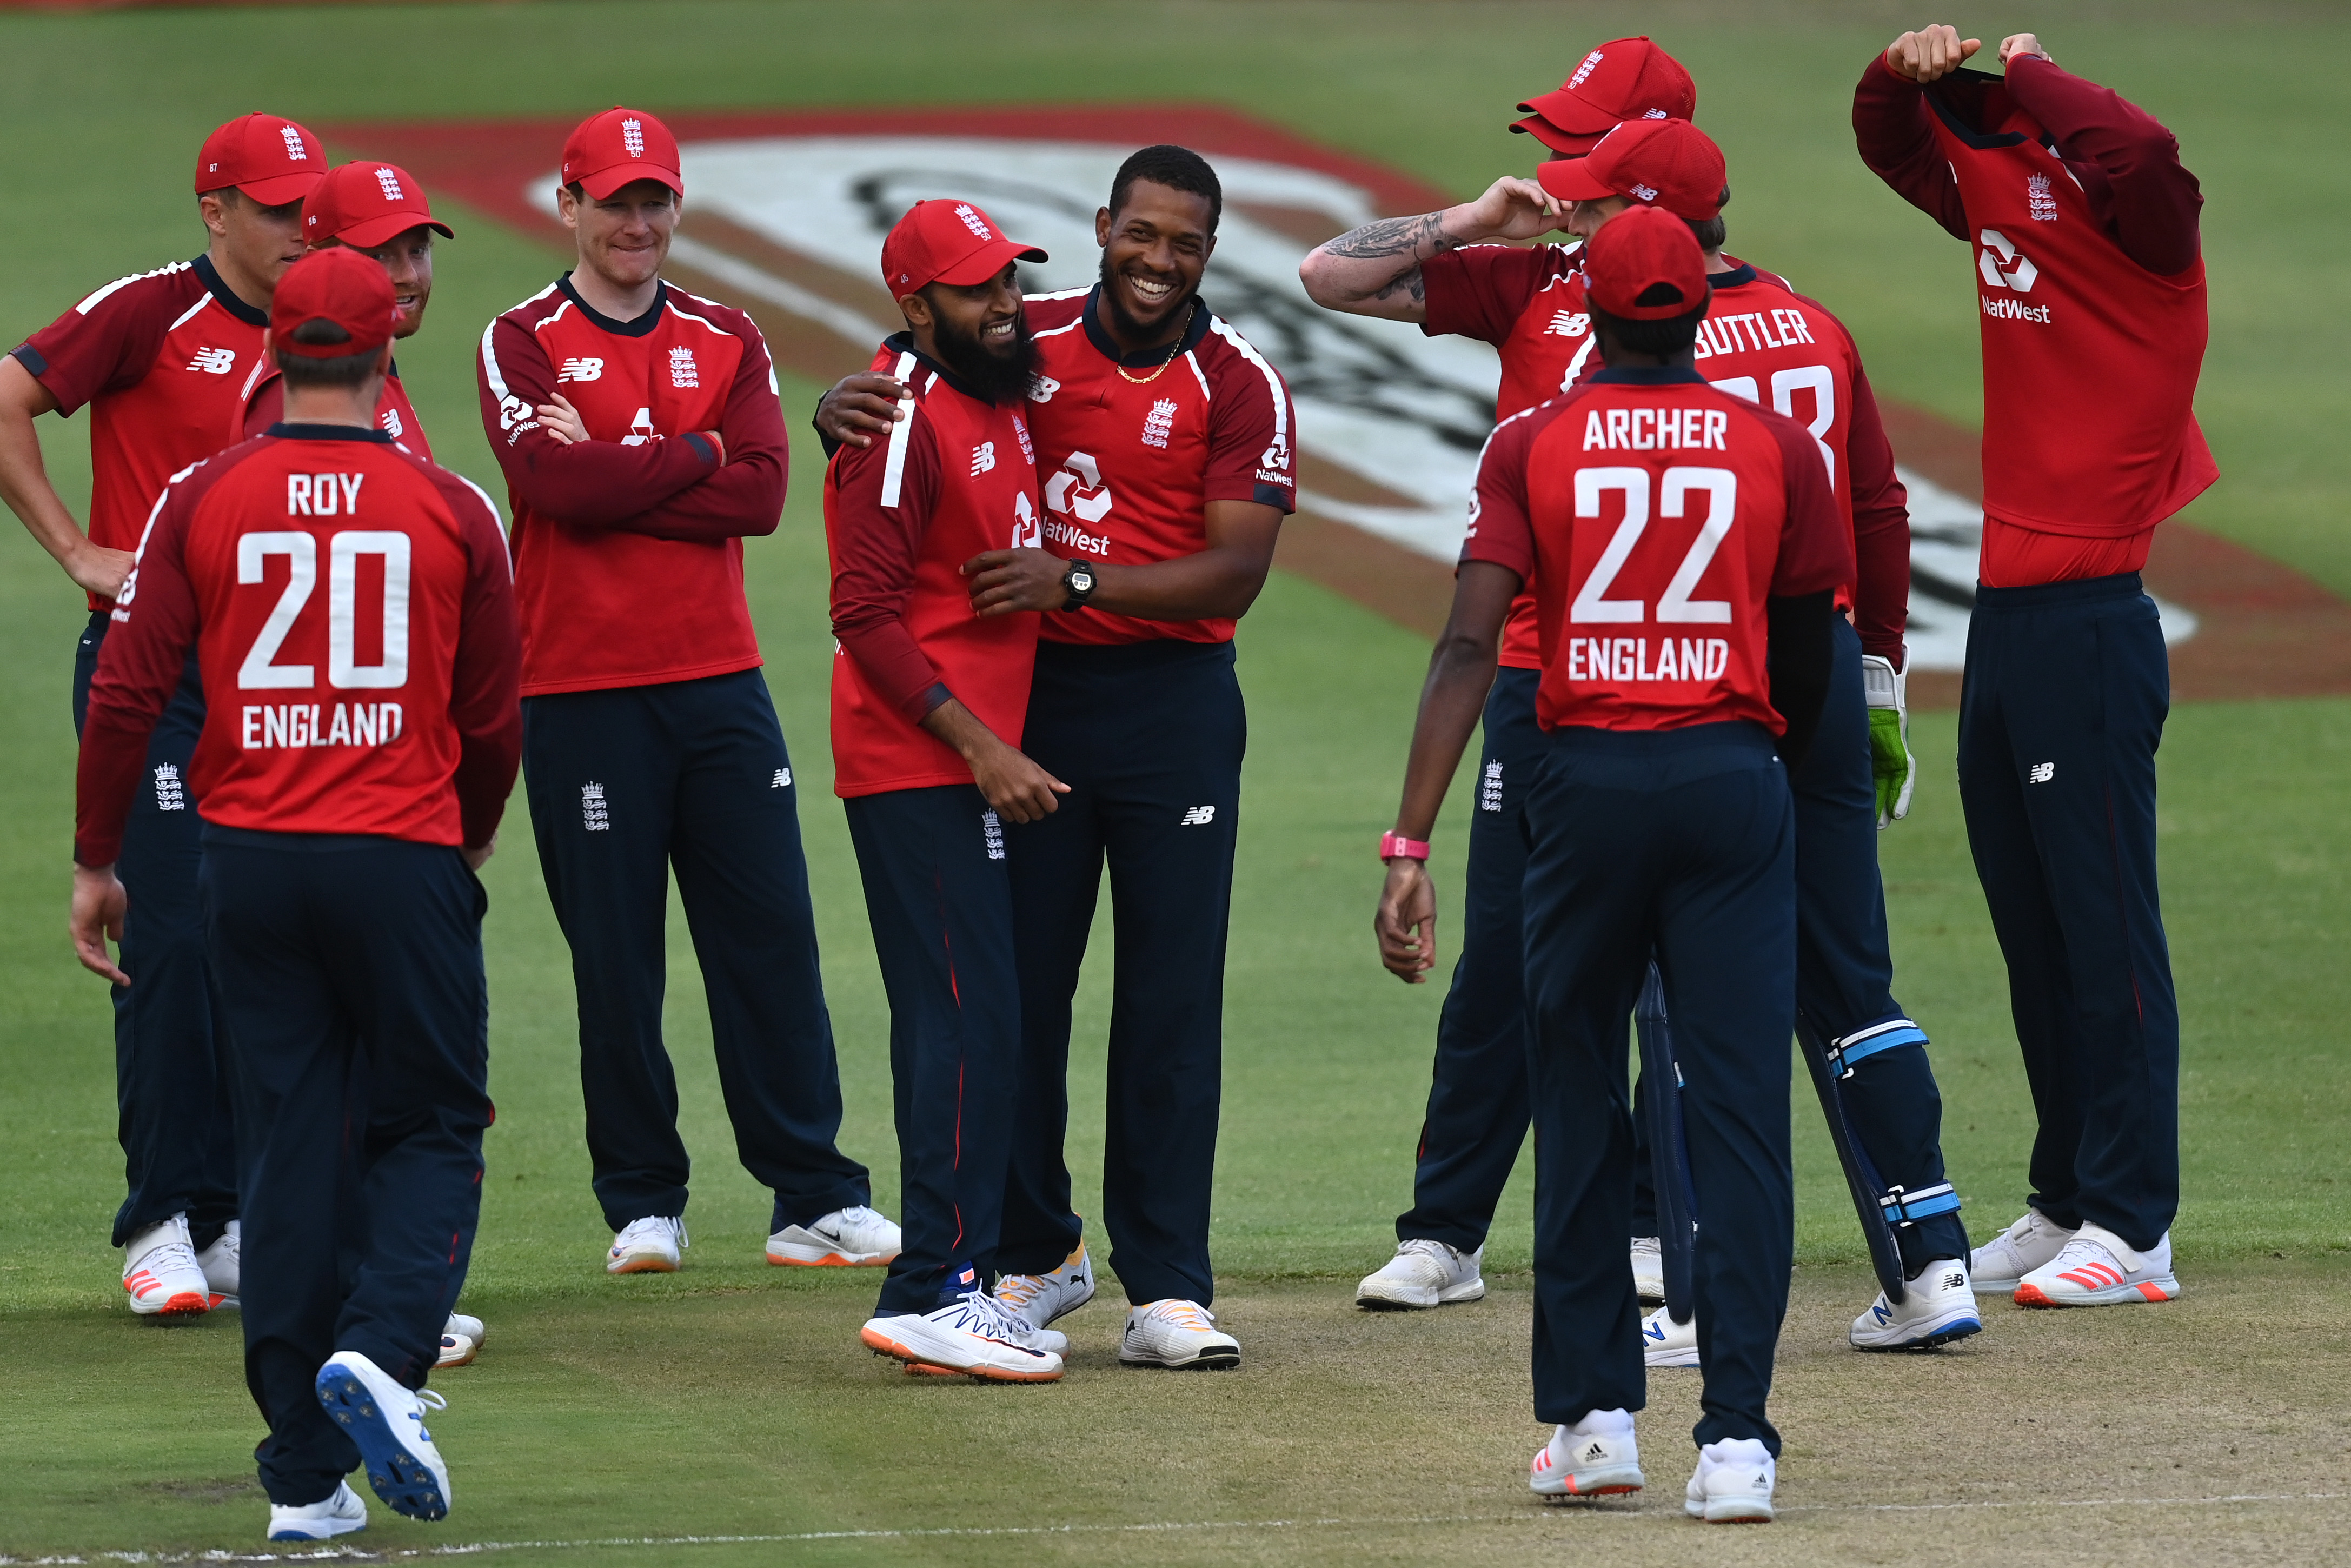 Livingstone recalled in 16-man England squad for India T20Is - International Cricket Council